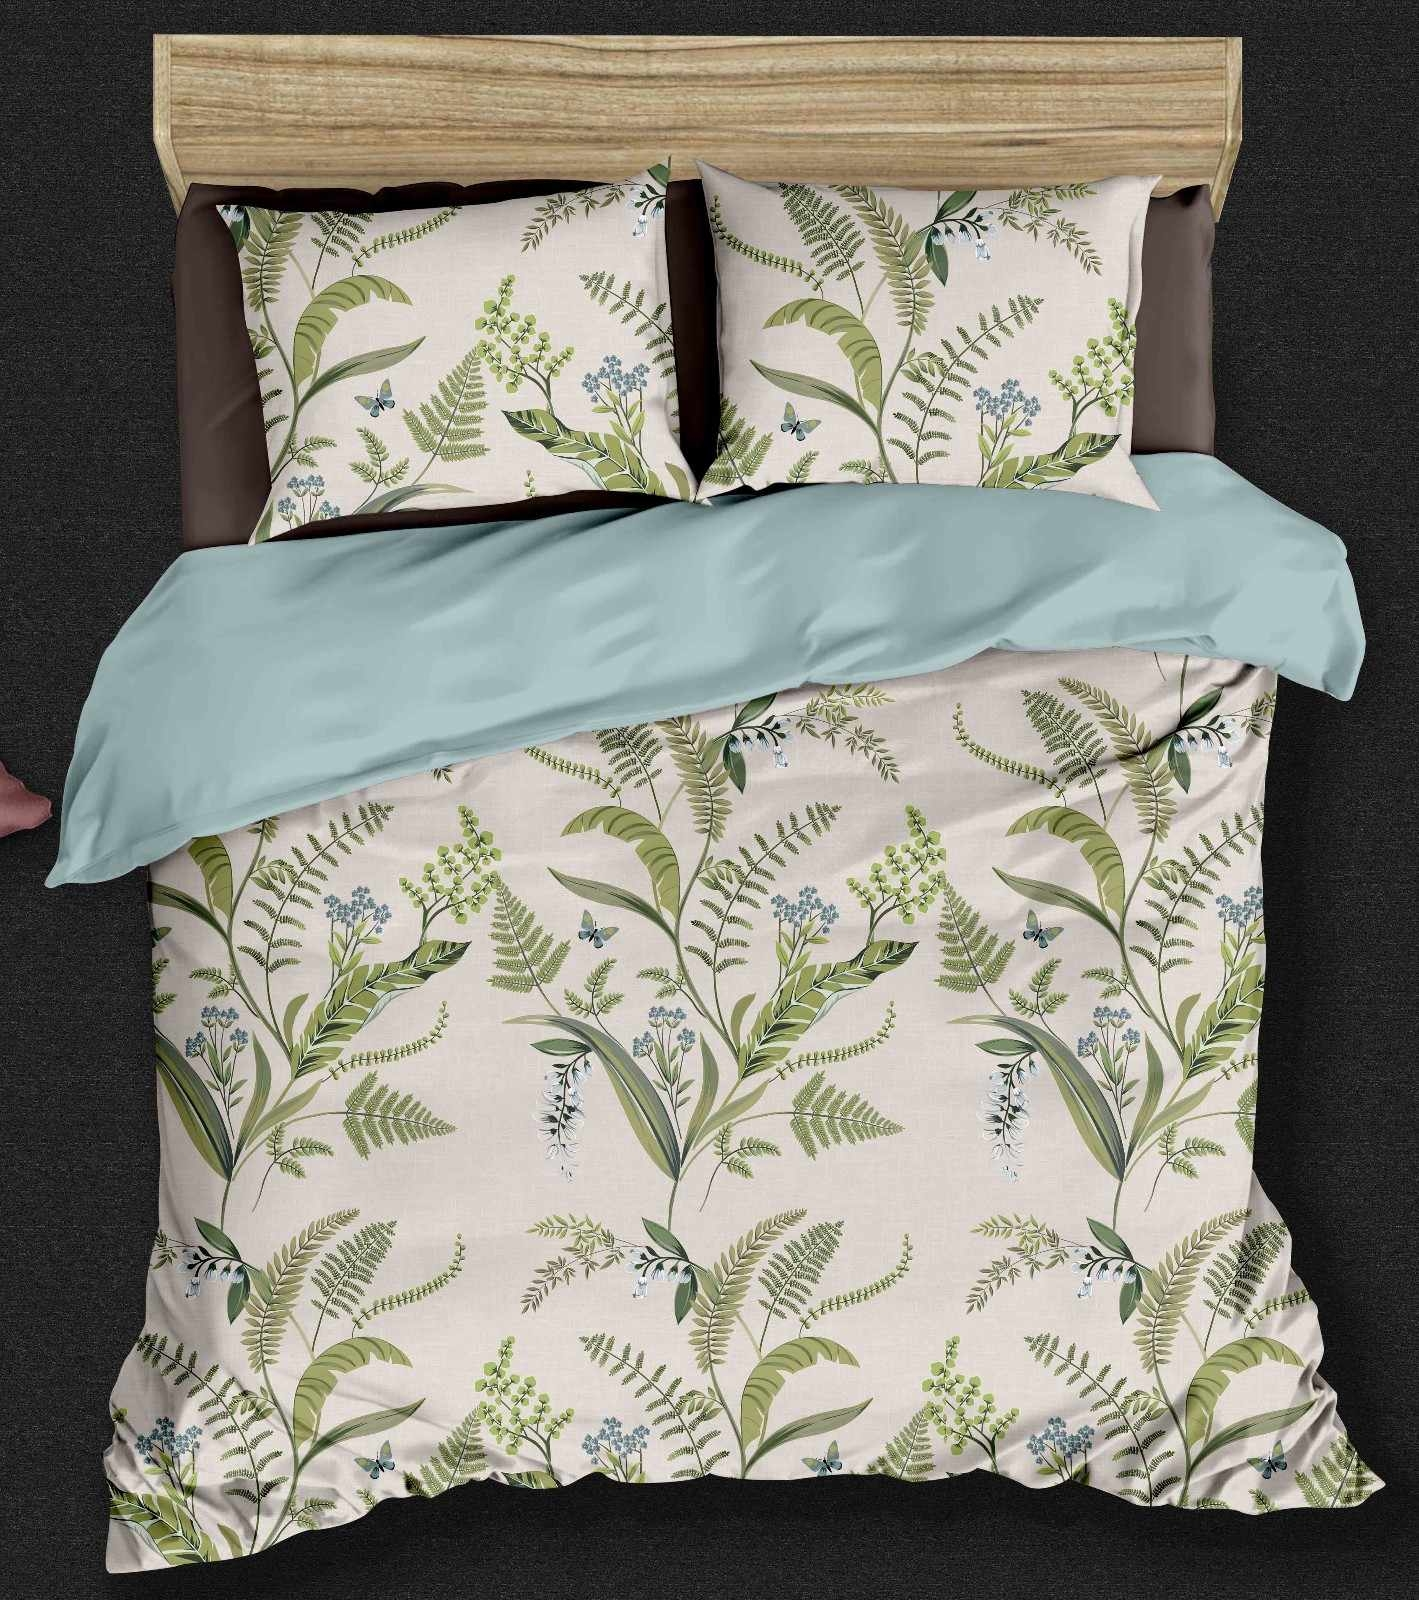 Hot modal sheets garden healthy blended Daphne Brand